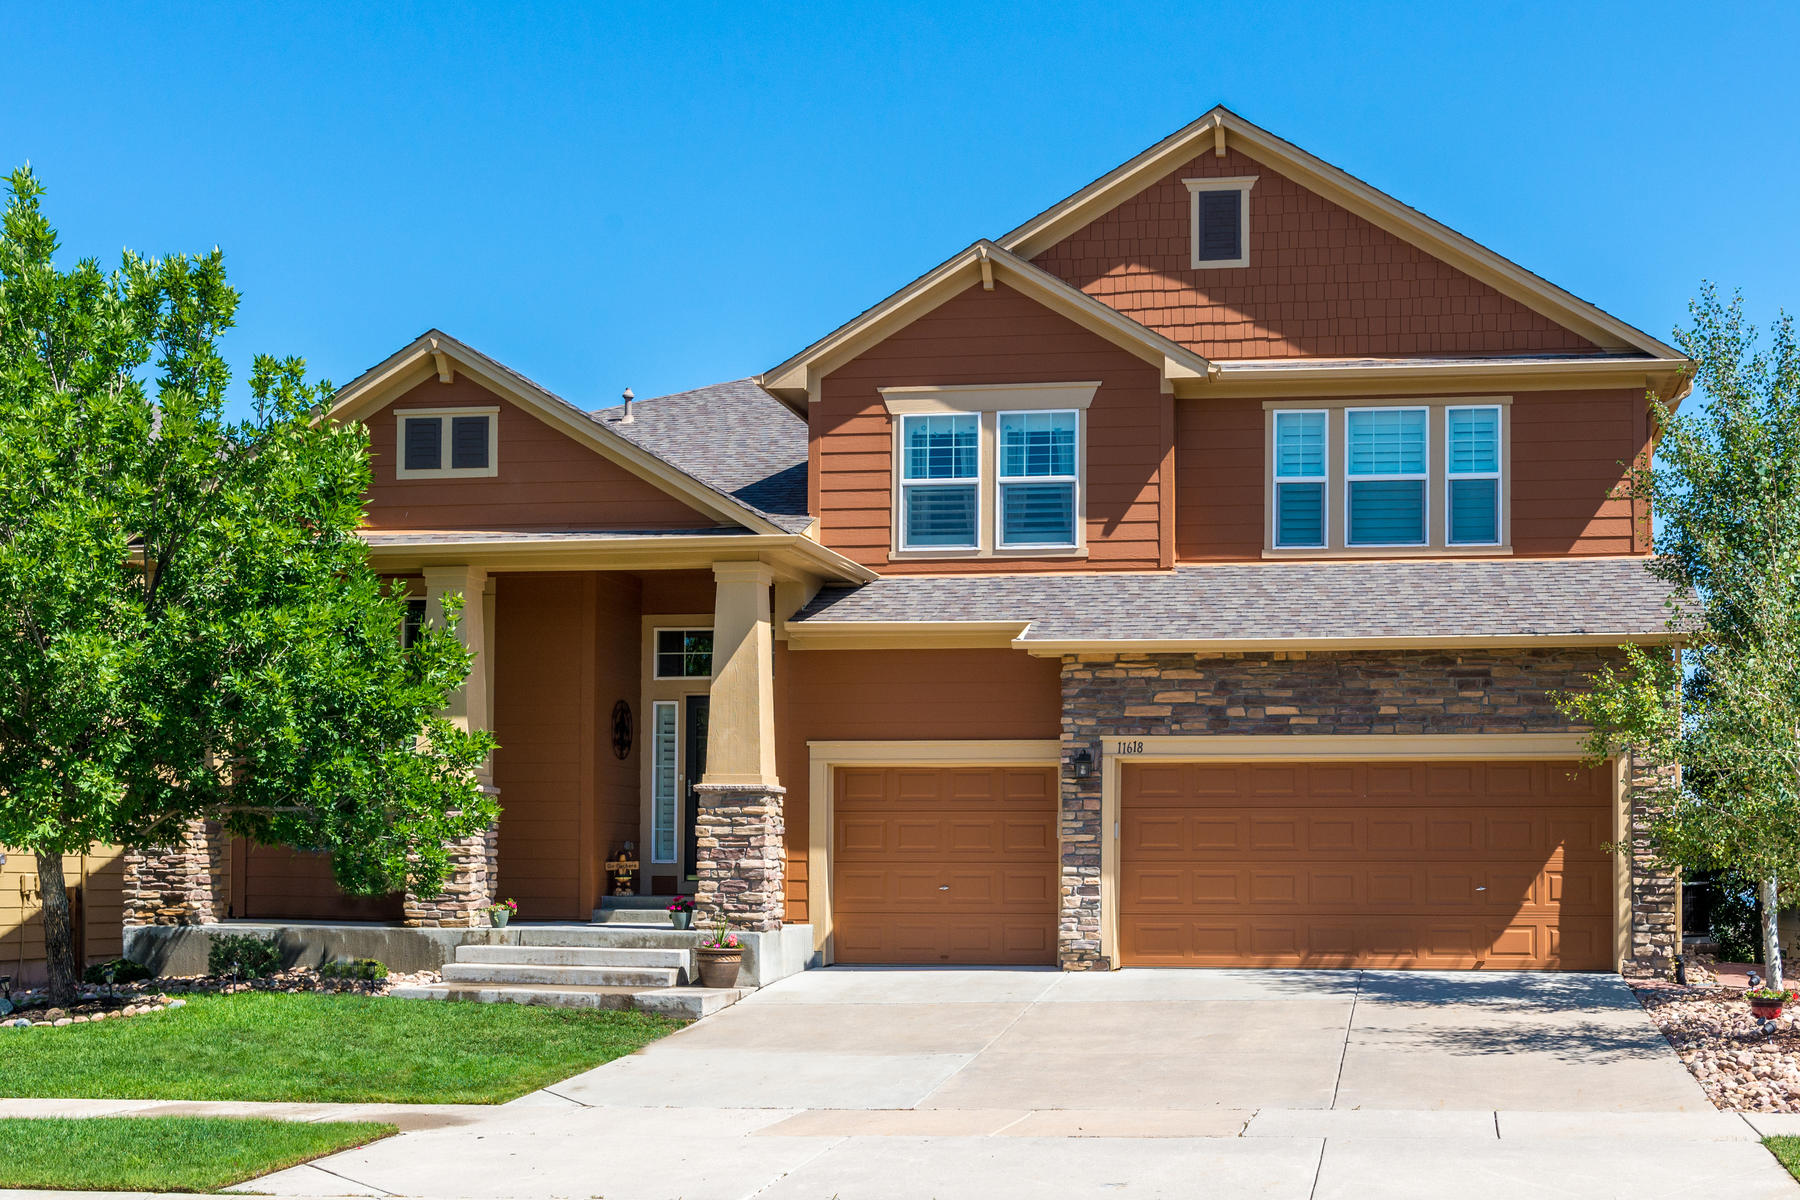 Single Family Home for Active at Magnificent family home with a spectacular setting 11618 South Breeze Grass Way Parker, Colorado 80134 United States